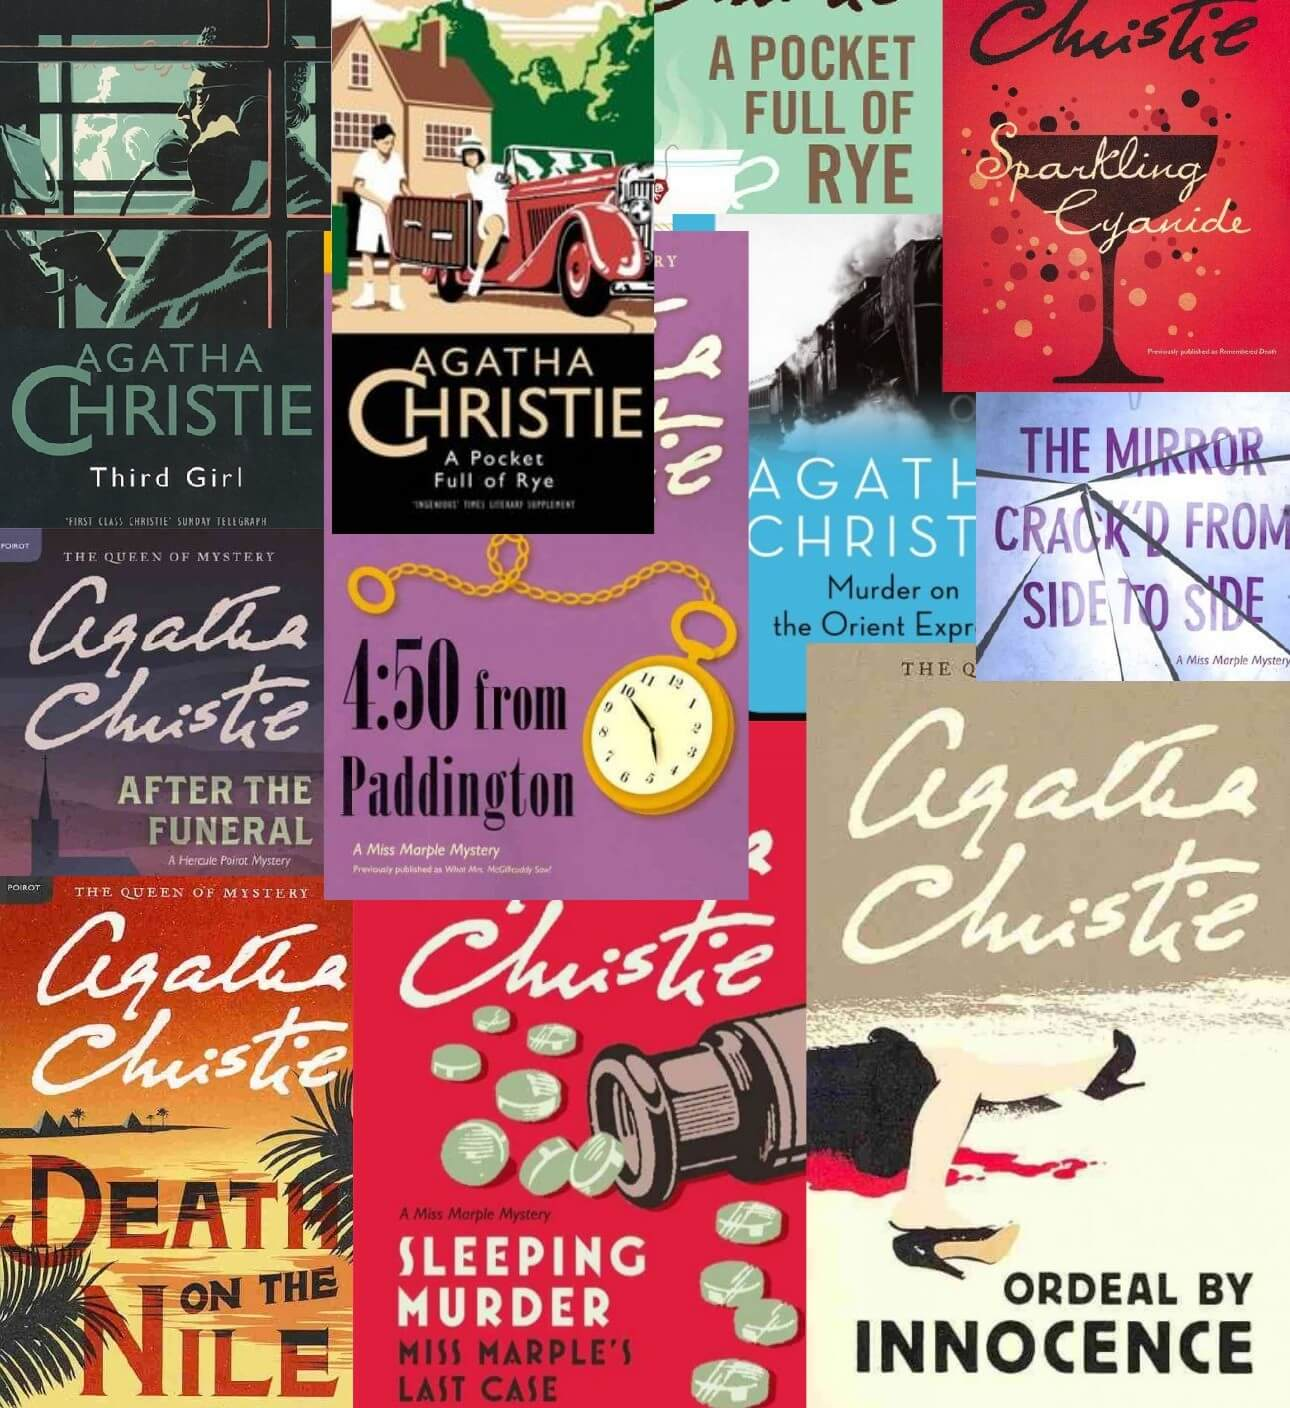 https://www.strandmag.com/product/top-ten-agatha-christie-novels-set/